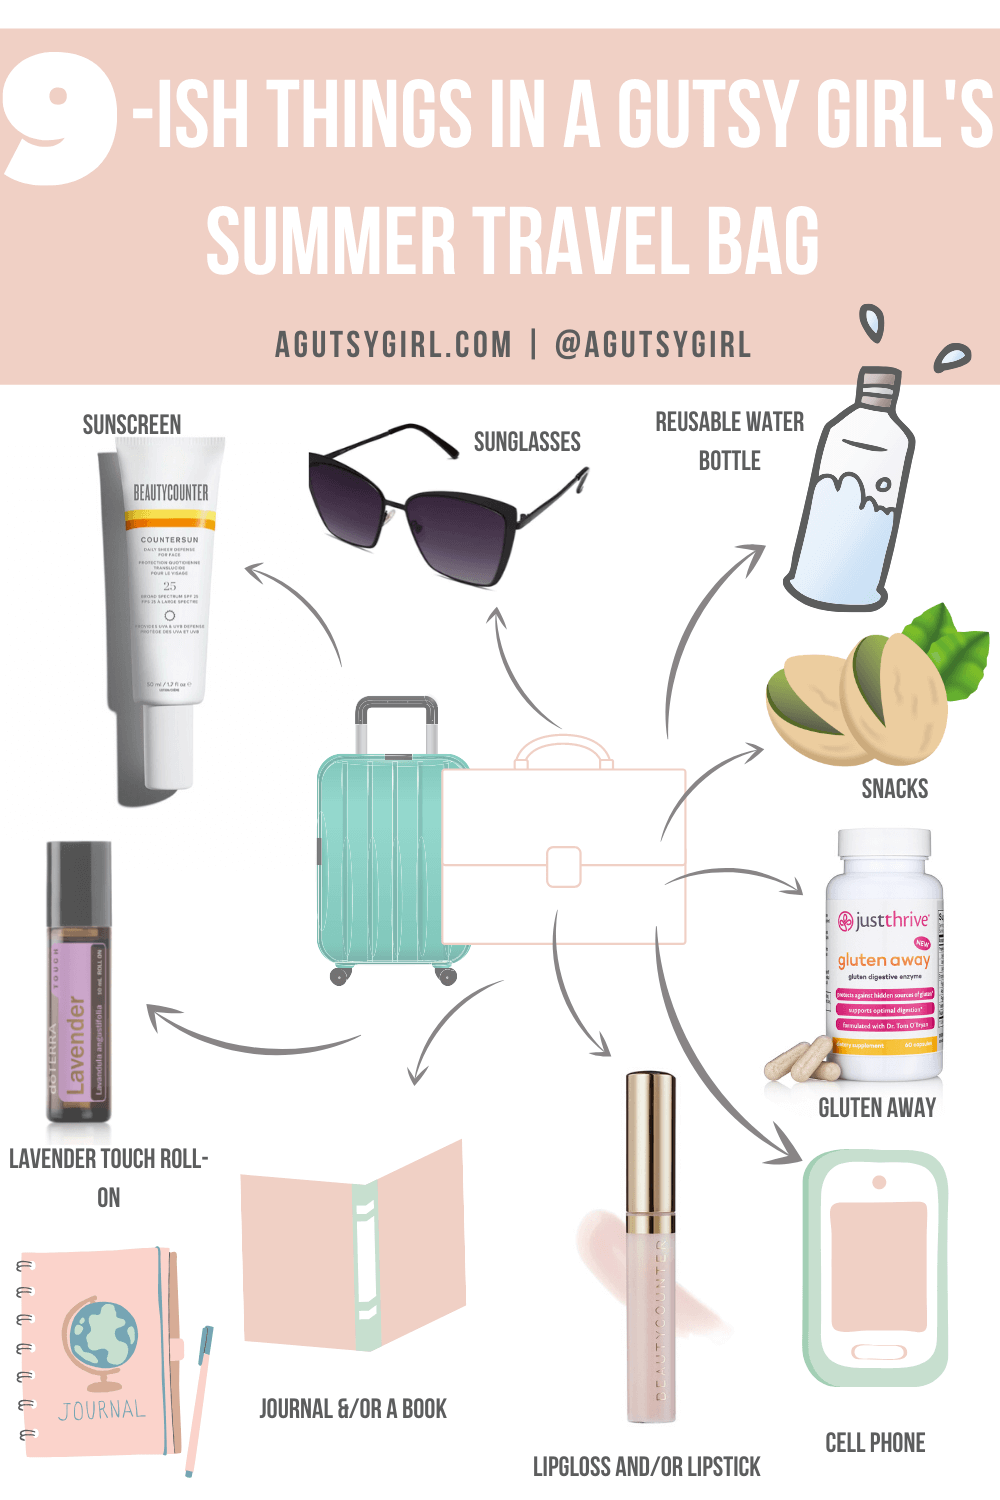 9 Things in My Summer Travel Bag agutsygirl.com #summertravel #travelbag #healthylife #guthealth #agutsygirl